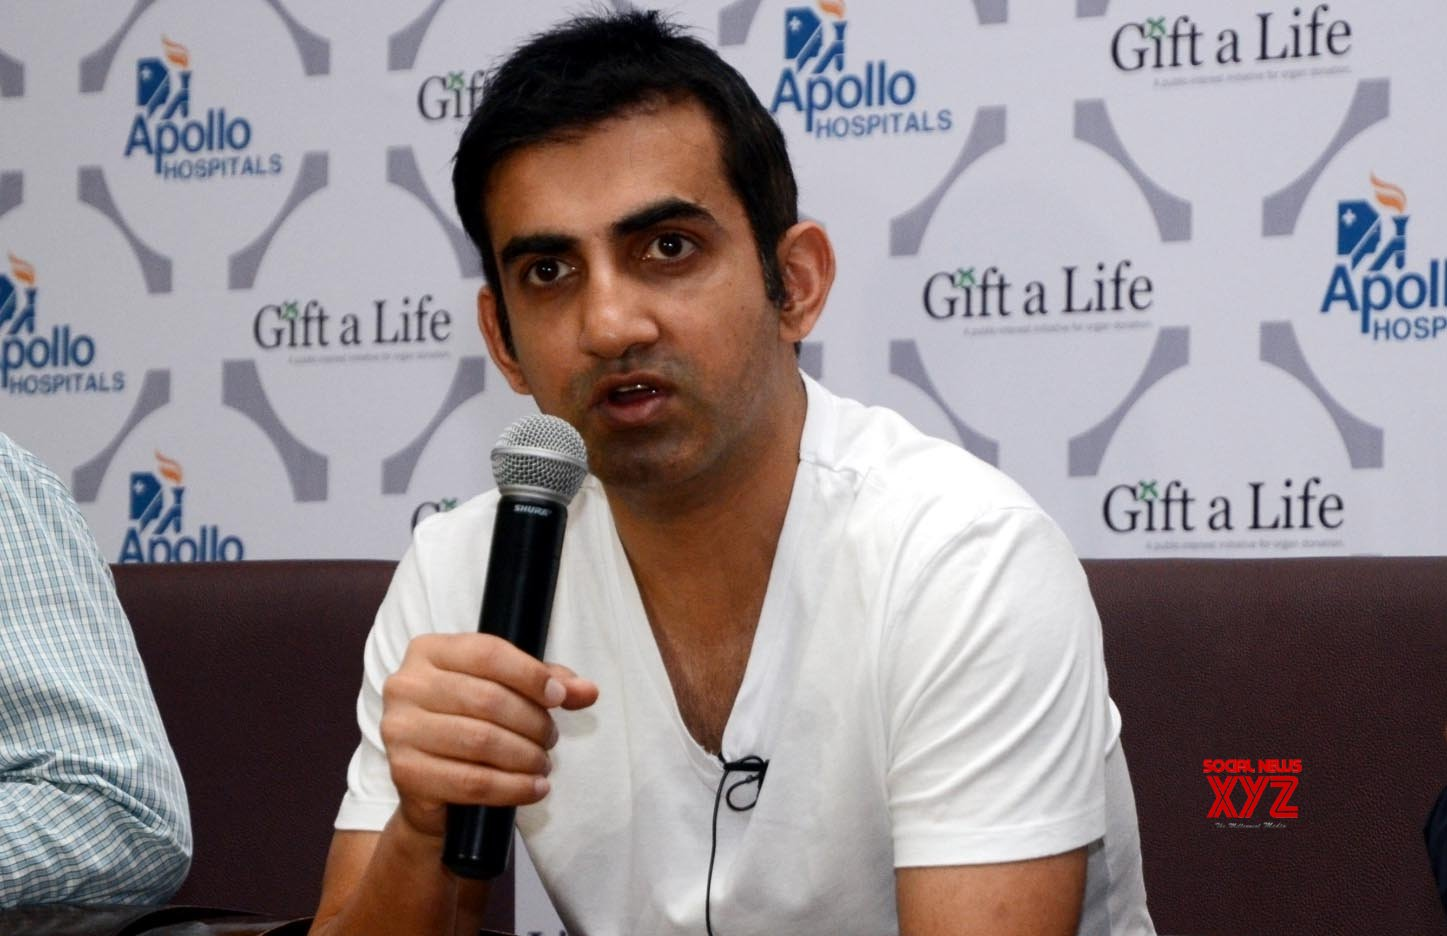 Considering longevity, I will go with Sachin over Virat, says Gambhir